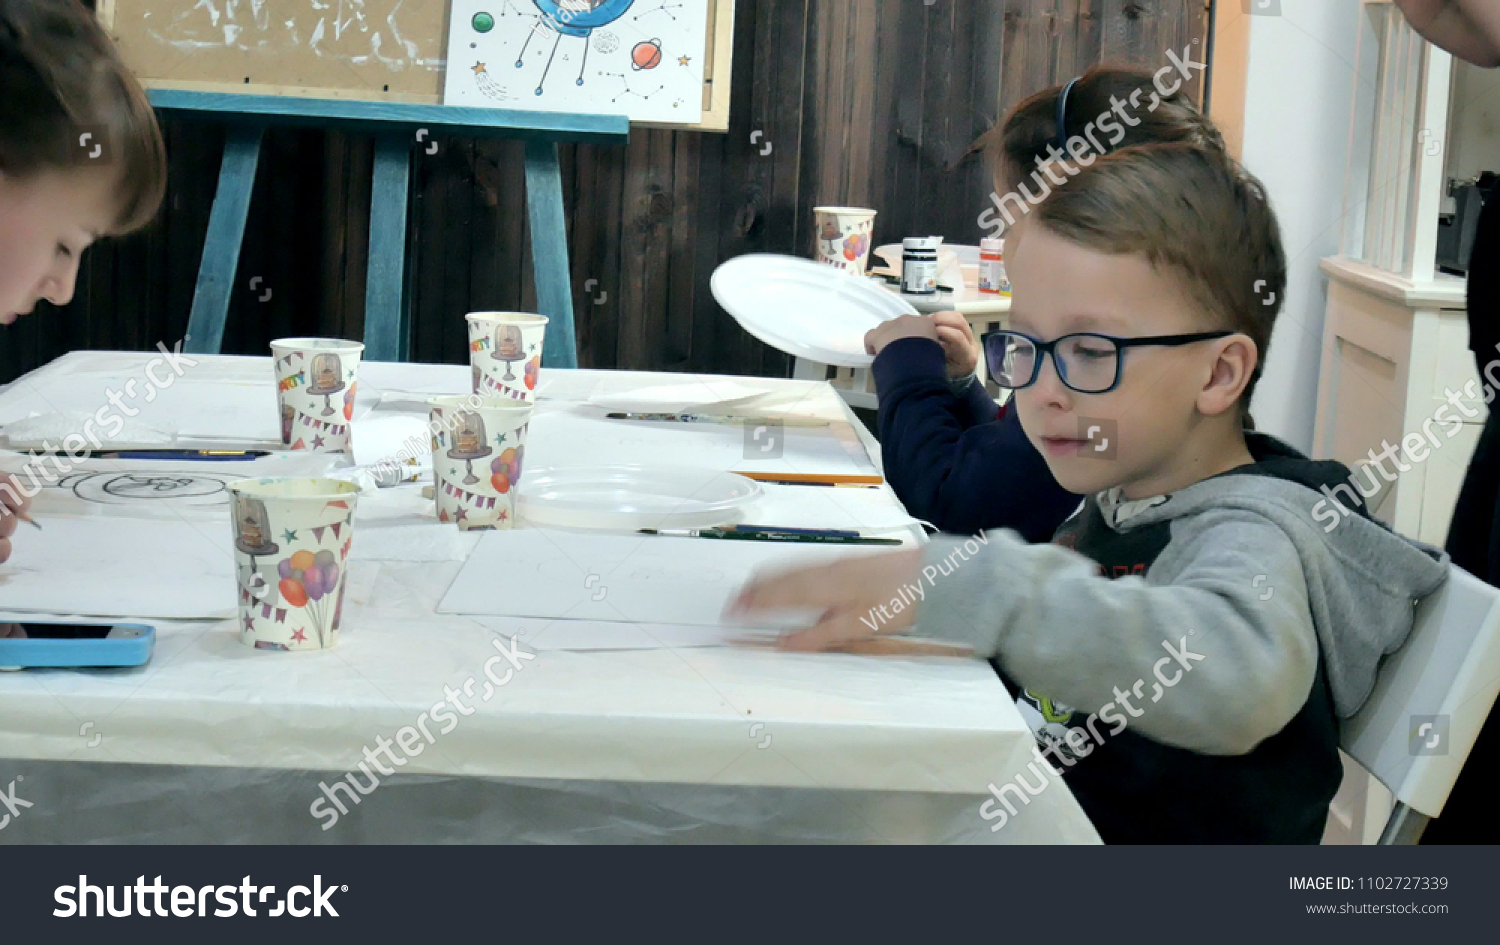 Children boys and girls sitting together around the table in classroom and  drawing. With them